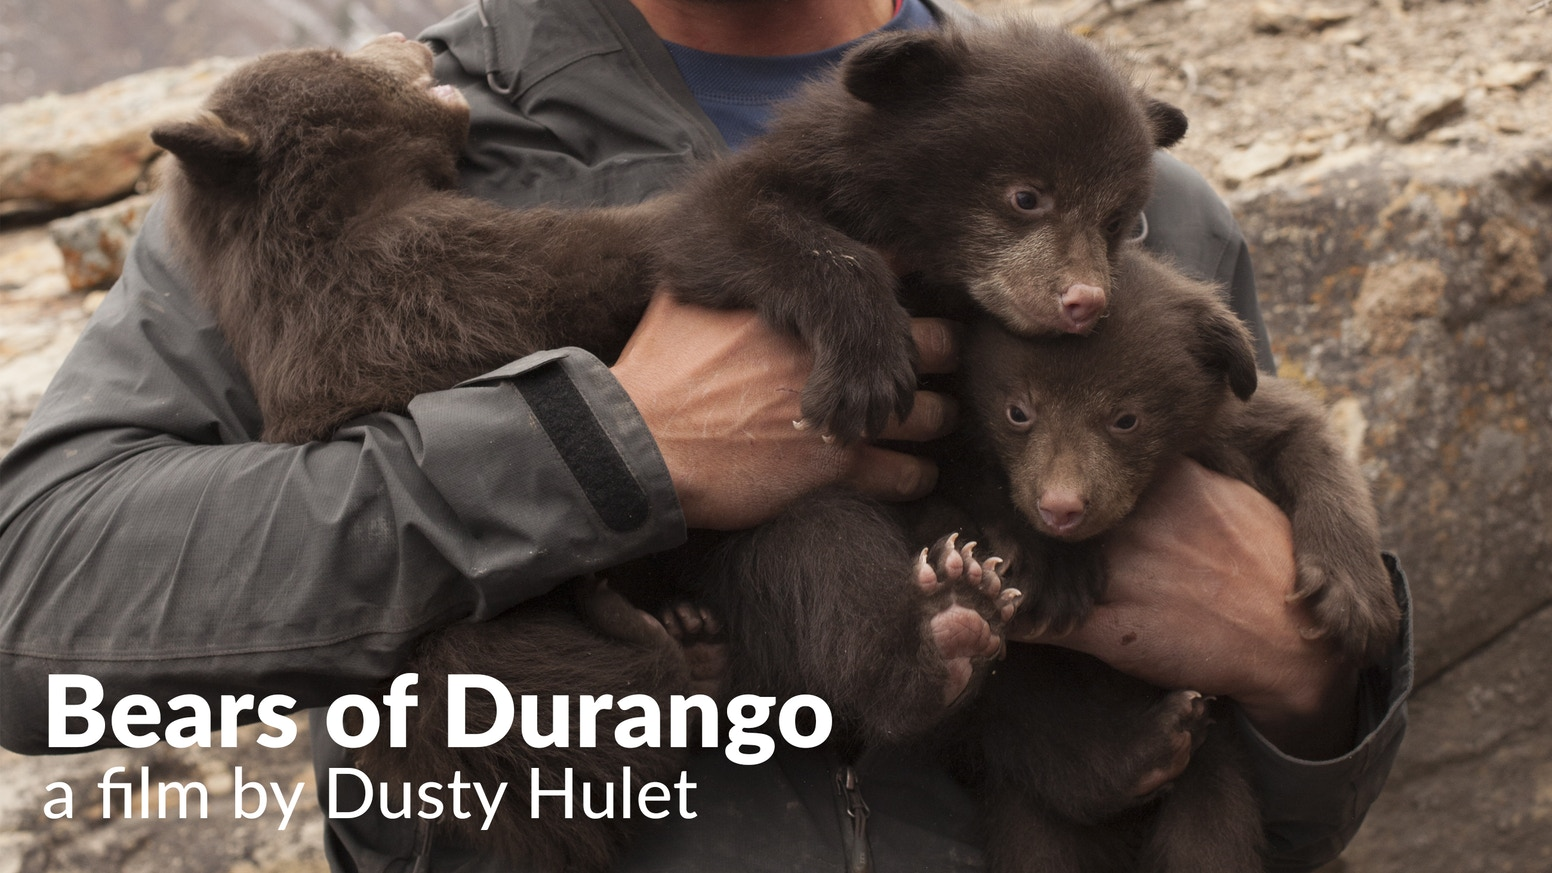 Dive headfirst into bear dens with the biologists studying how human development affects bear behavior. ********************************To make additional contributions, contact: bearsofdurango@gmail.com